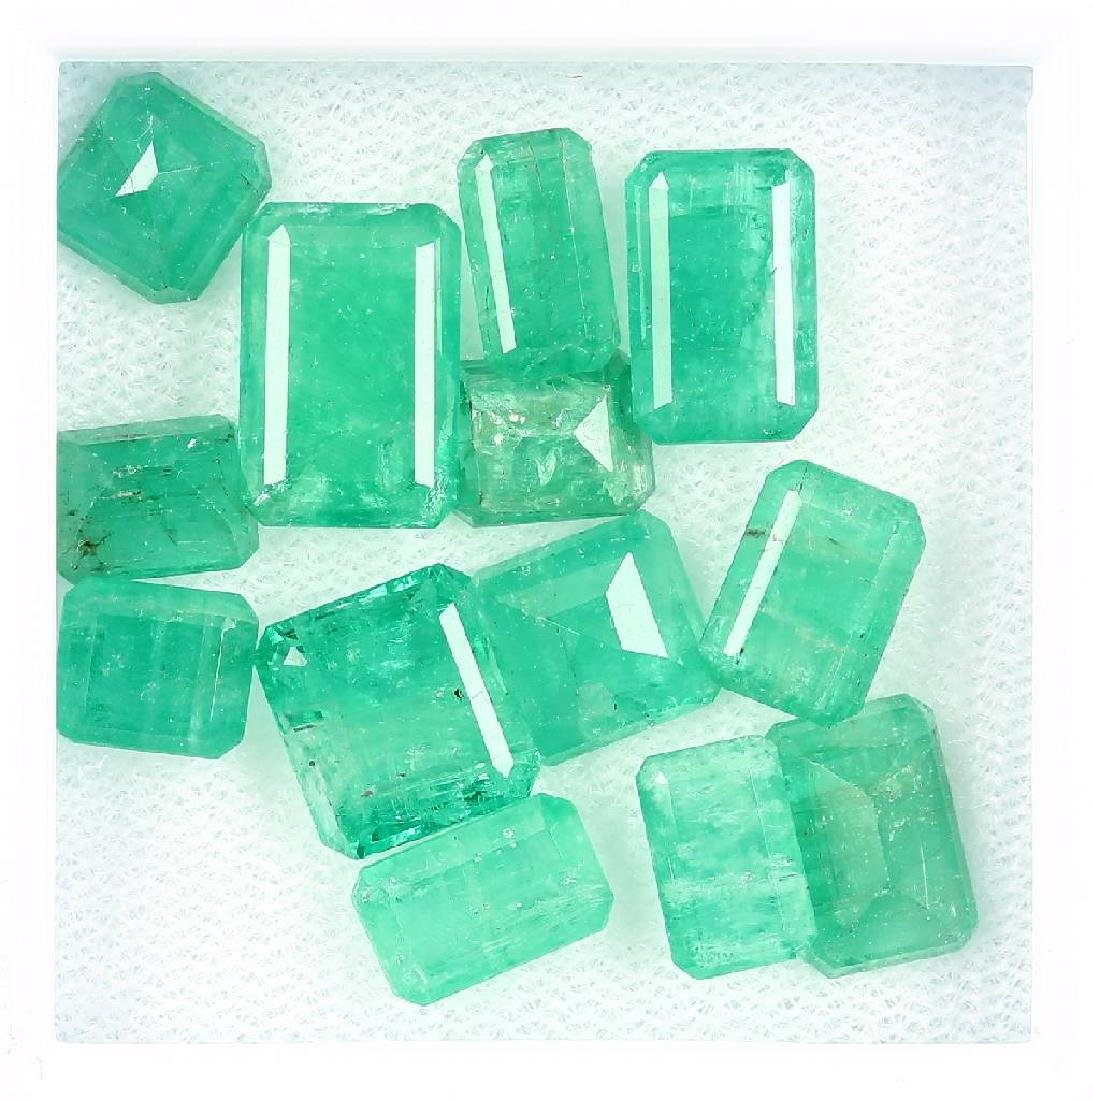 Lot loose emeralds, total approx. 20.6 ct